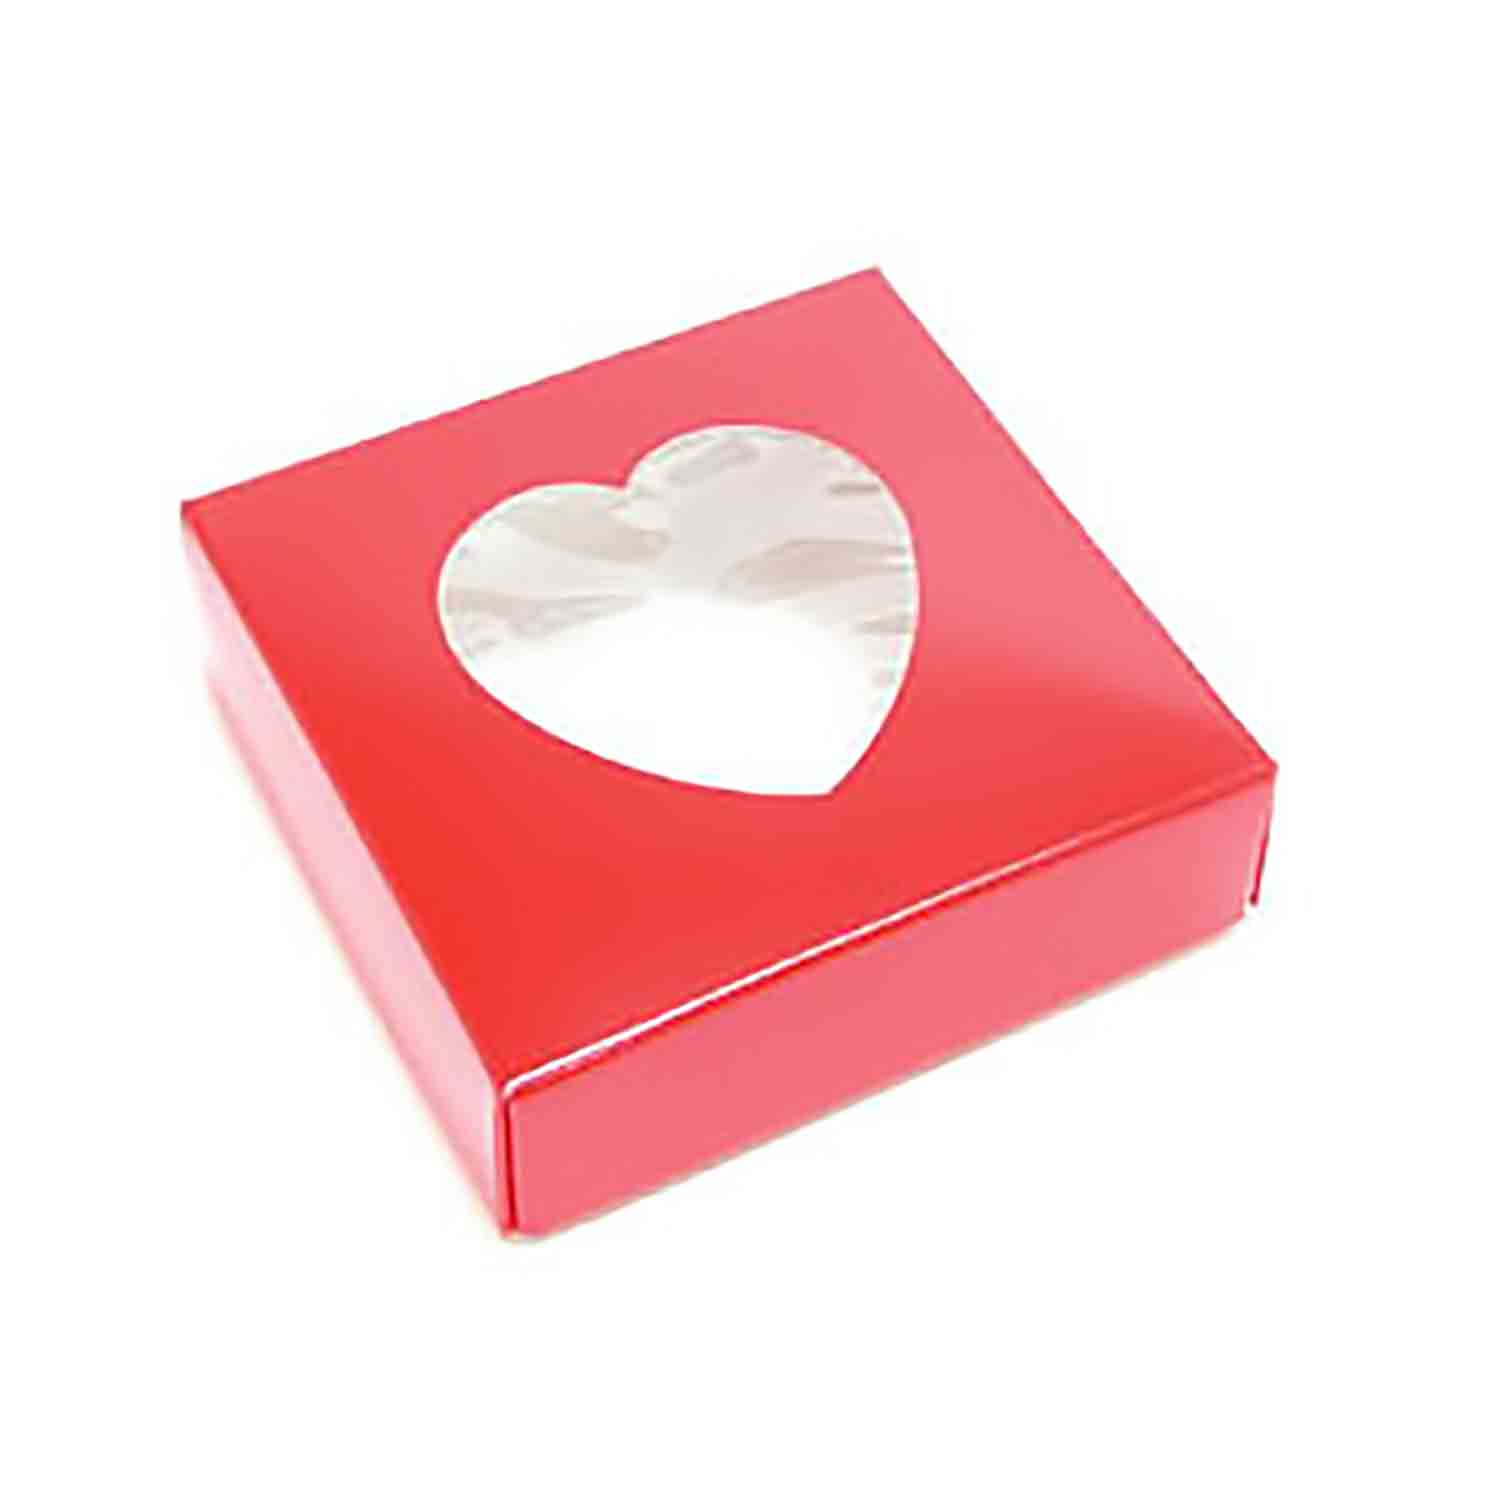 3 oz. Red Candy Box with Heart Window